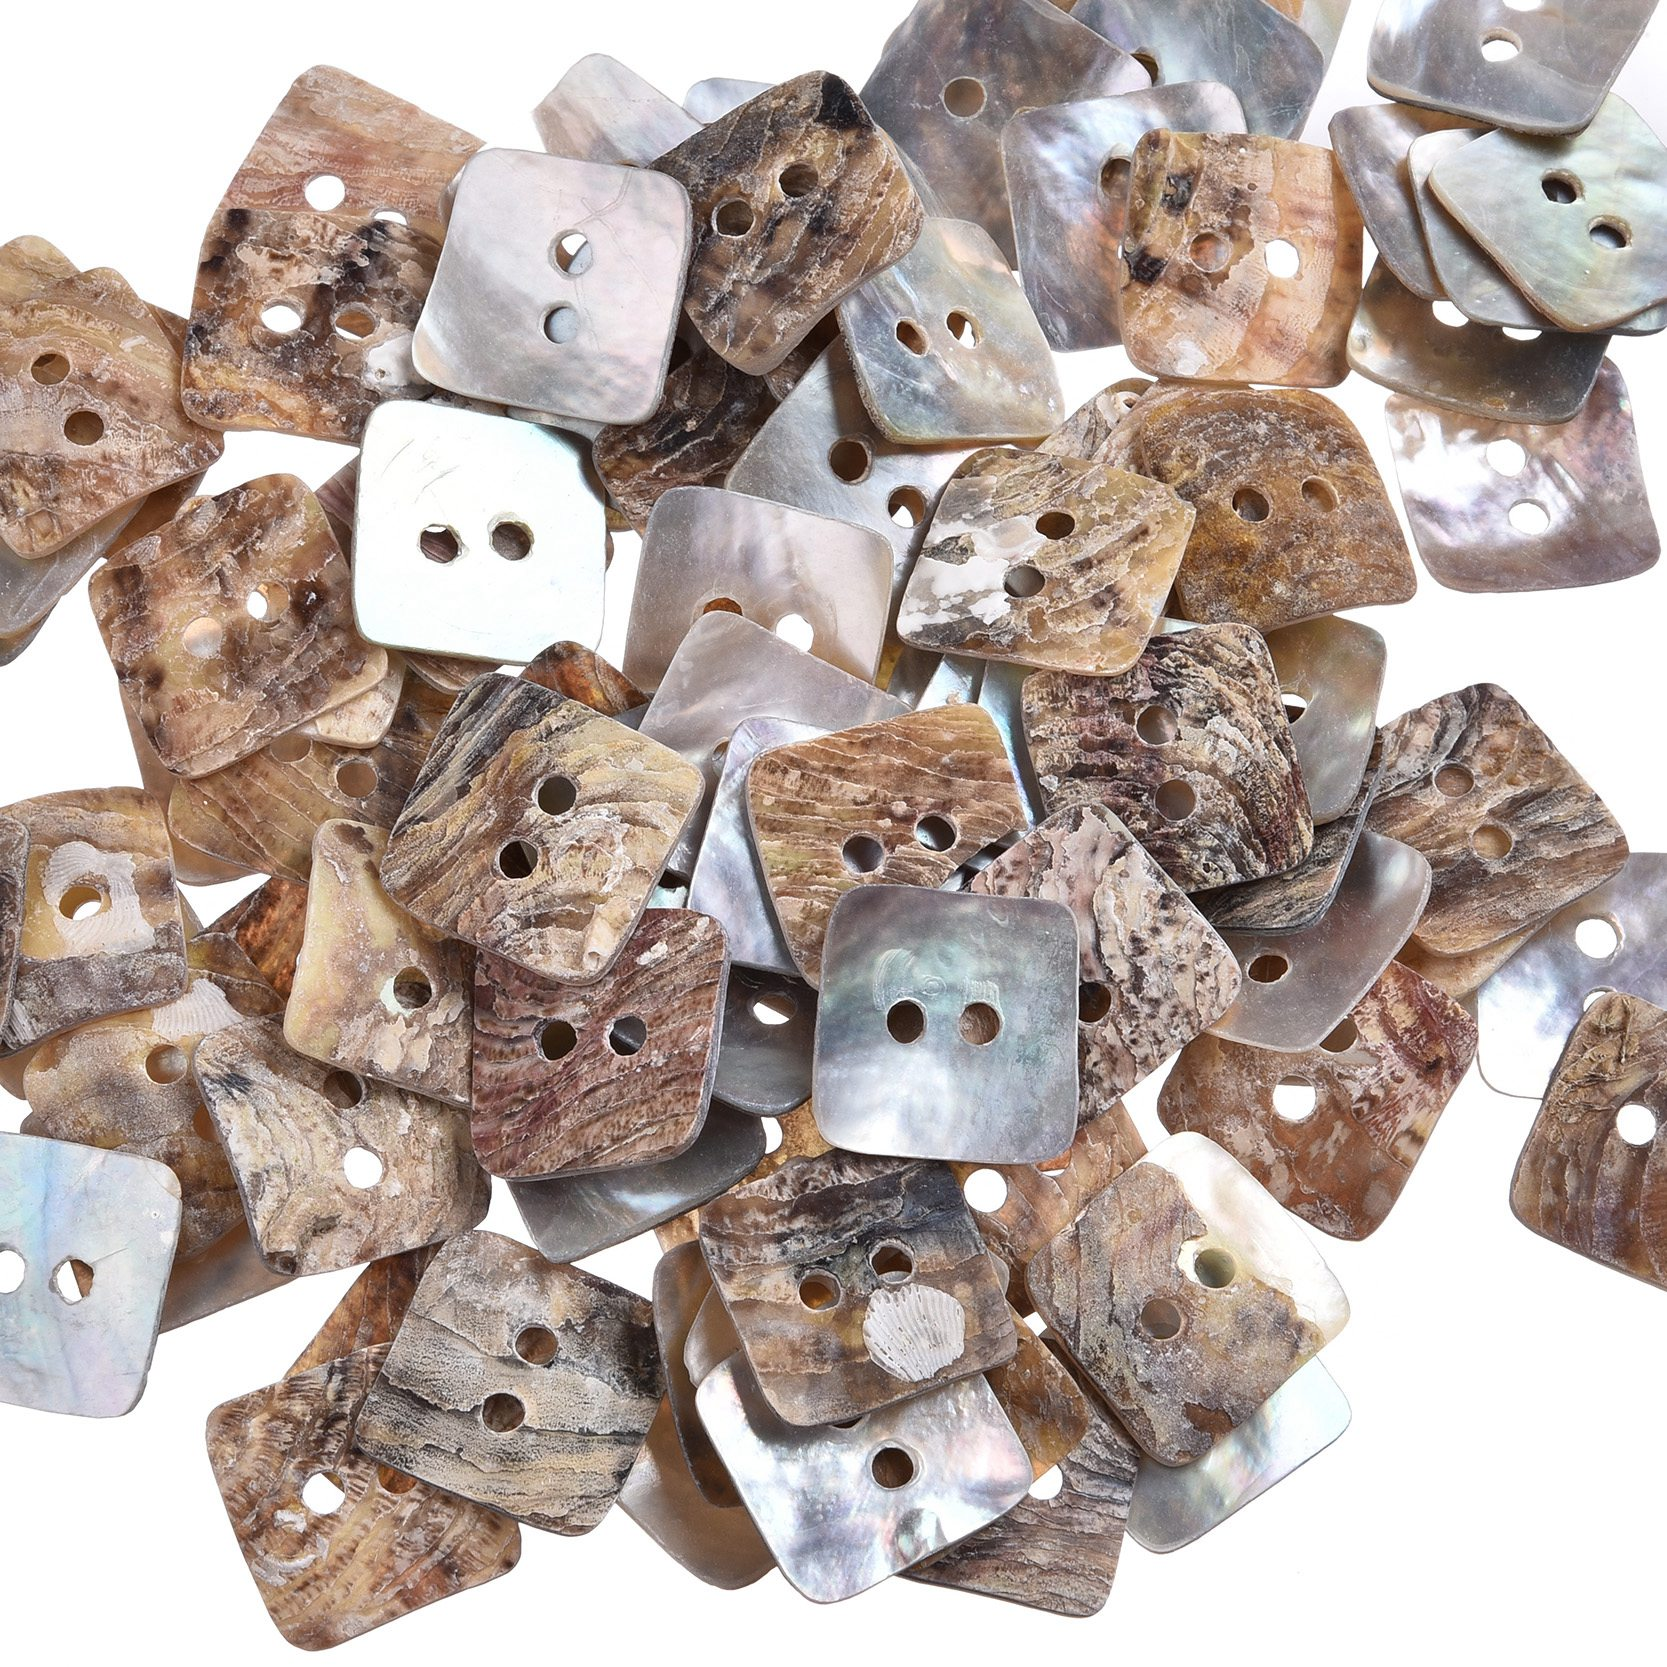 100 Pcs 12mm 2 Holes Mother of Pearl Square Sewing Buttons Scrapbooking Knopf Bouton DIY ...